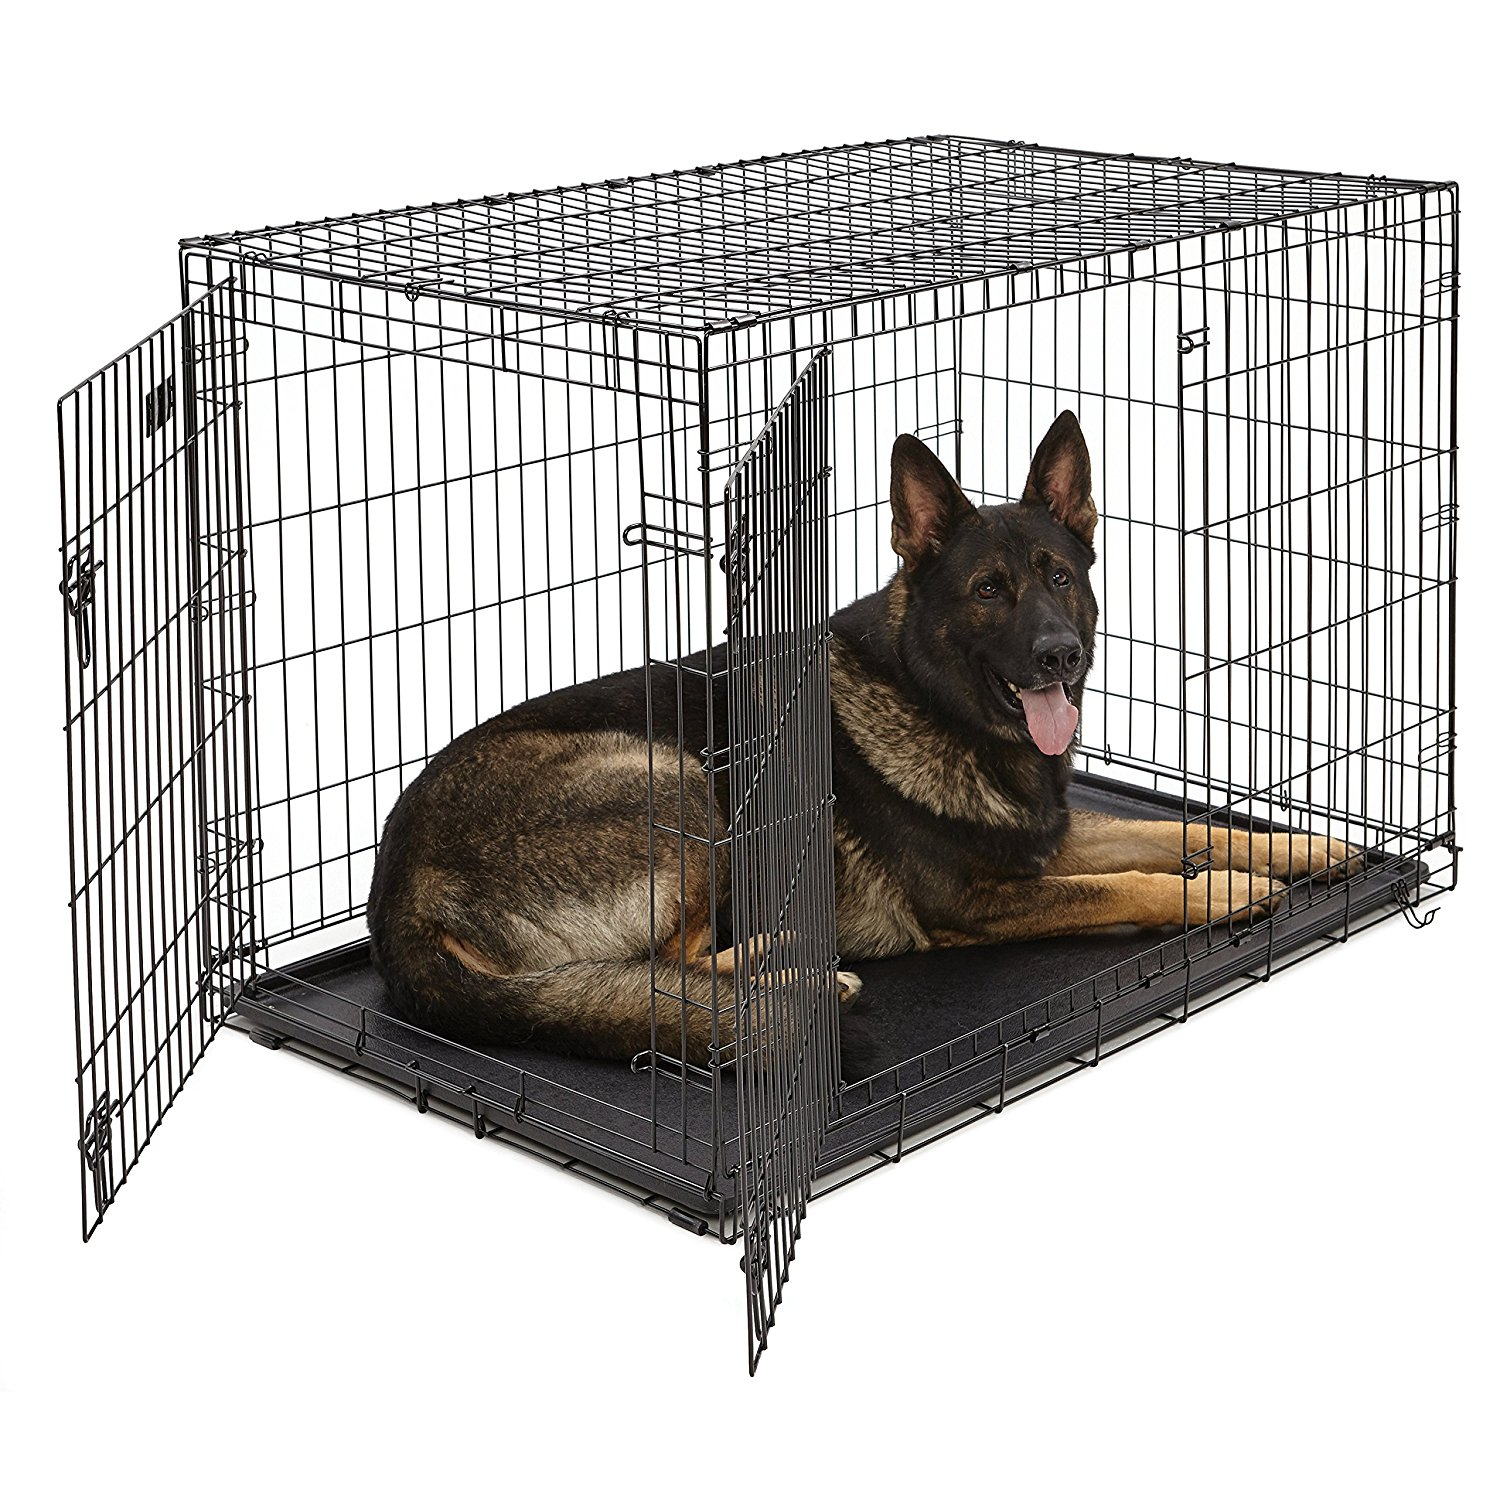 Large Dog Crate - For Standard GoldendoodlesSingle door folding metal dog crate, iCrate measures 48L x 30W x 33H inches Dog crate includes a FREE divider panel, durable dog tray, carrying handle,